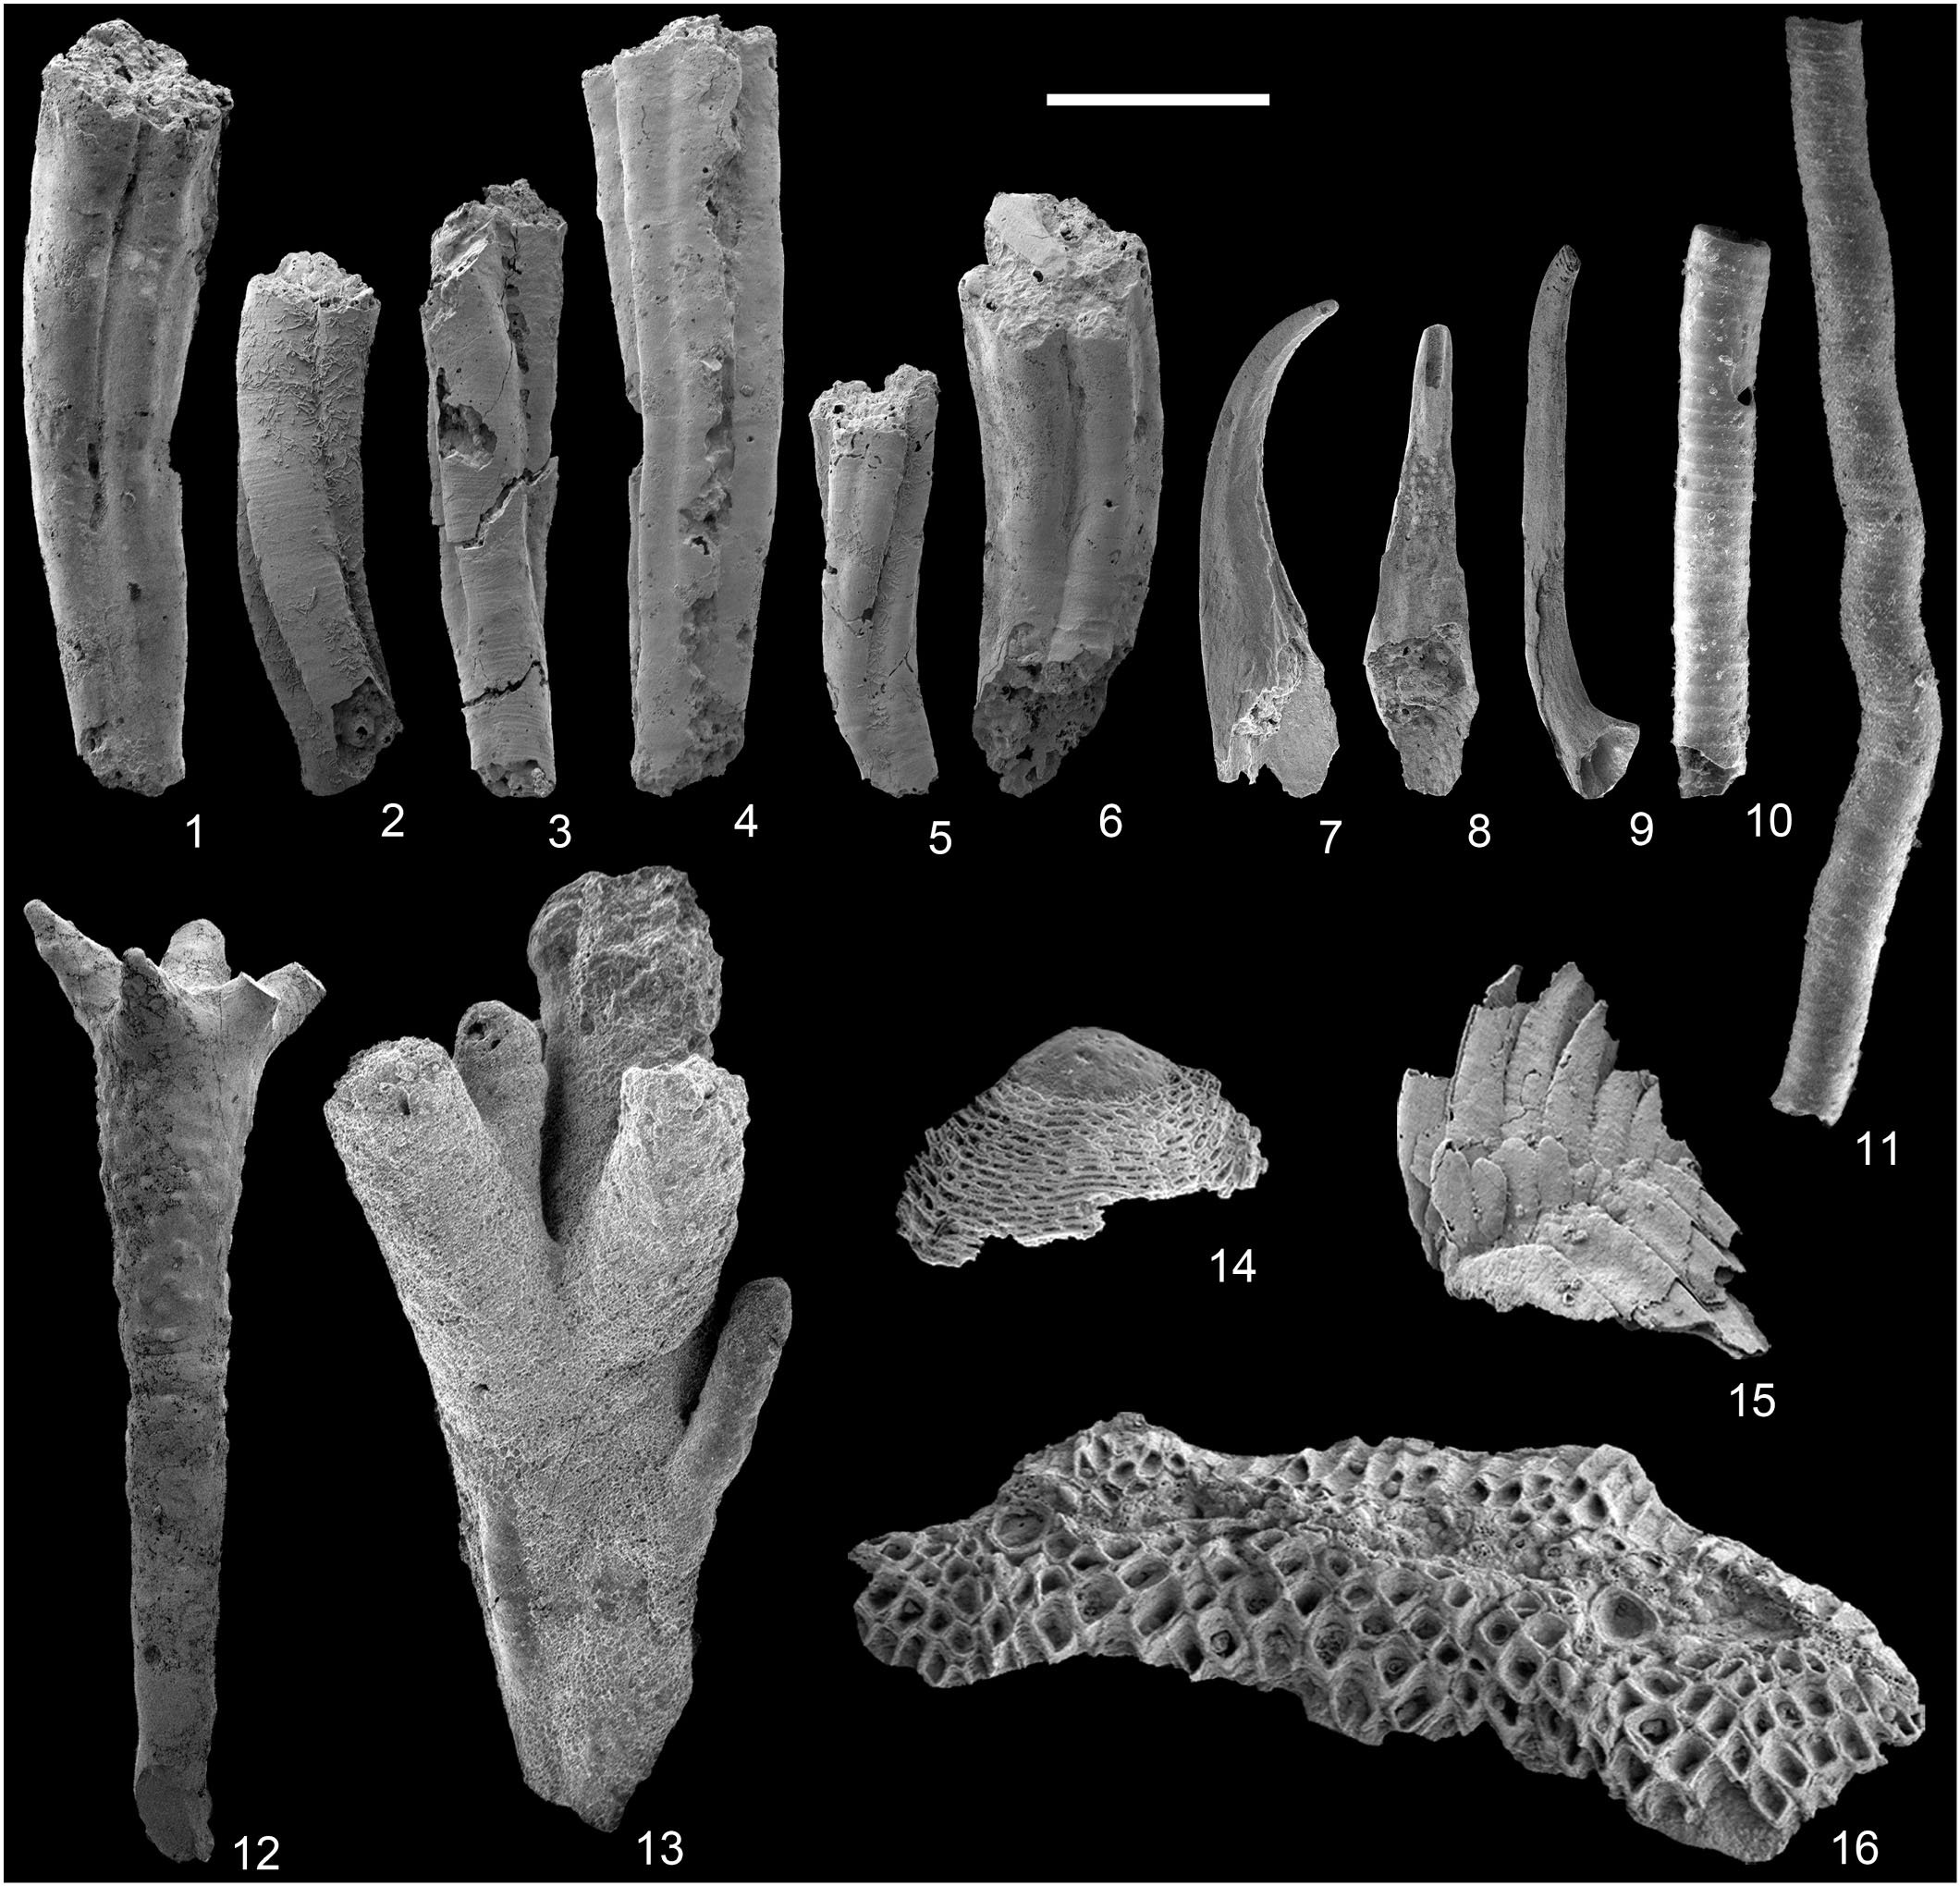 Diversity Of Cnidarians And Cycloneuralians In The Fortunian Early